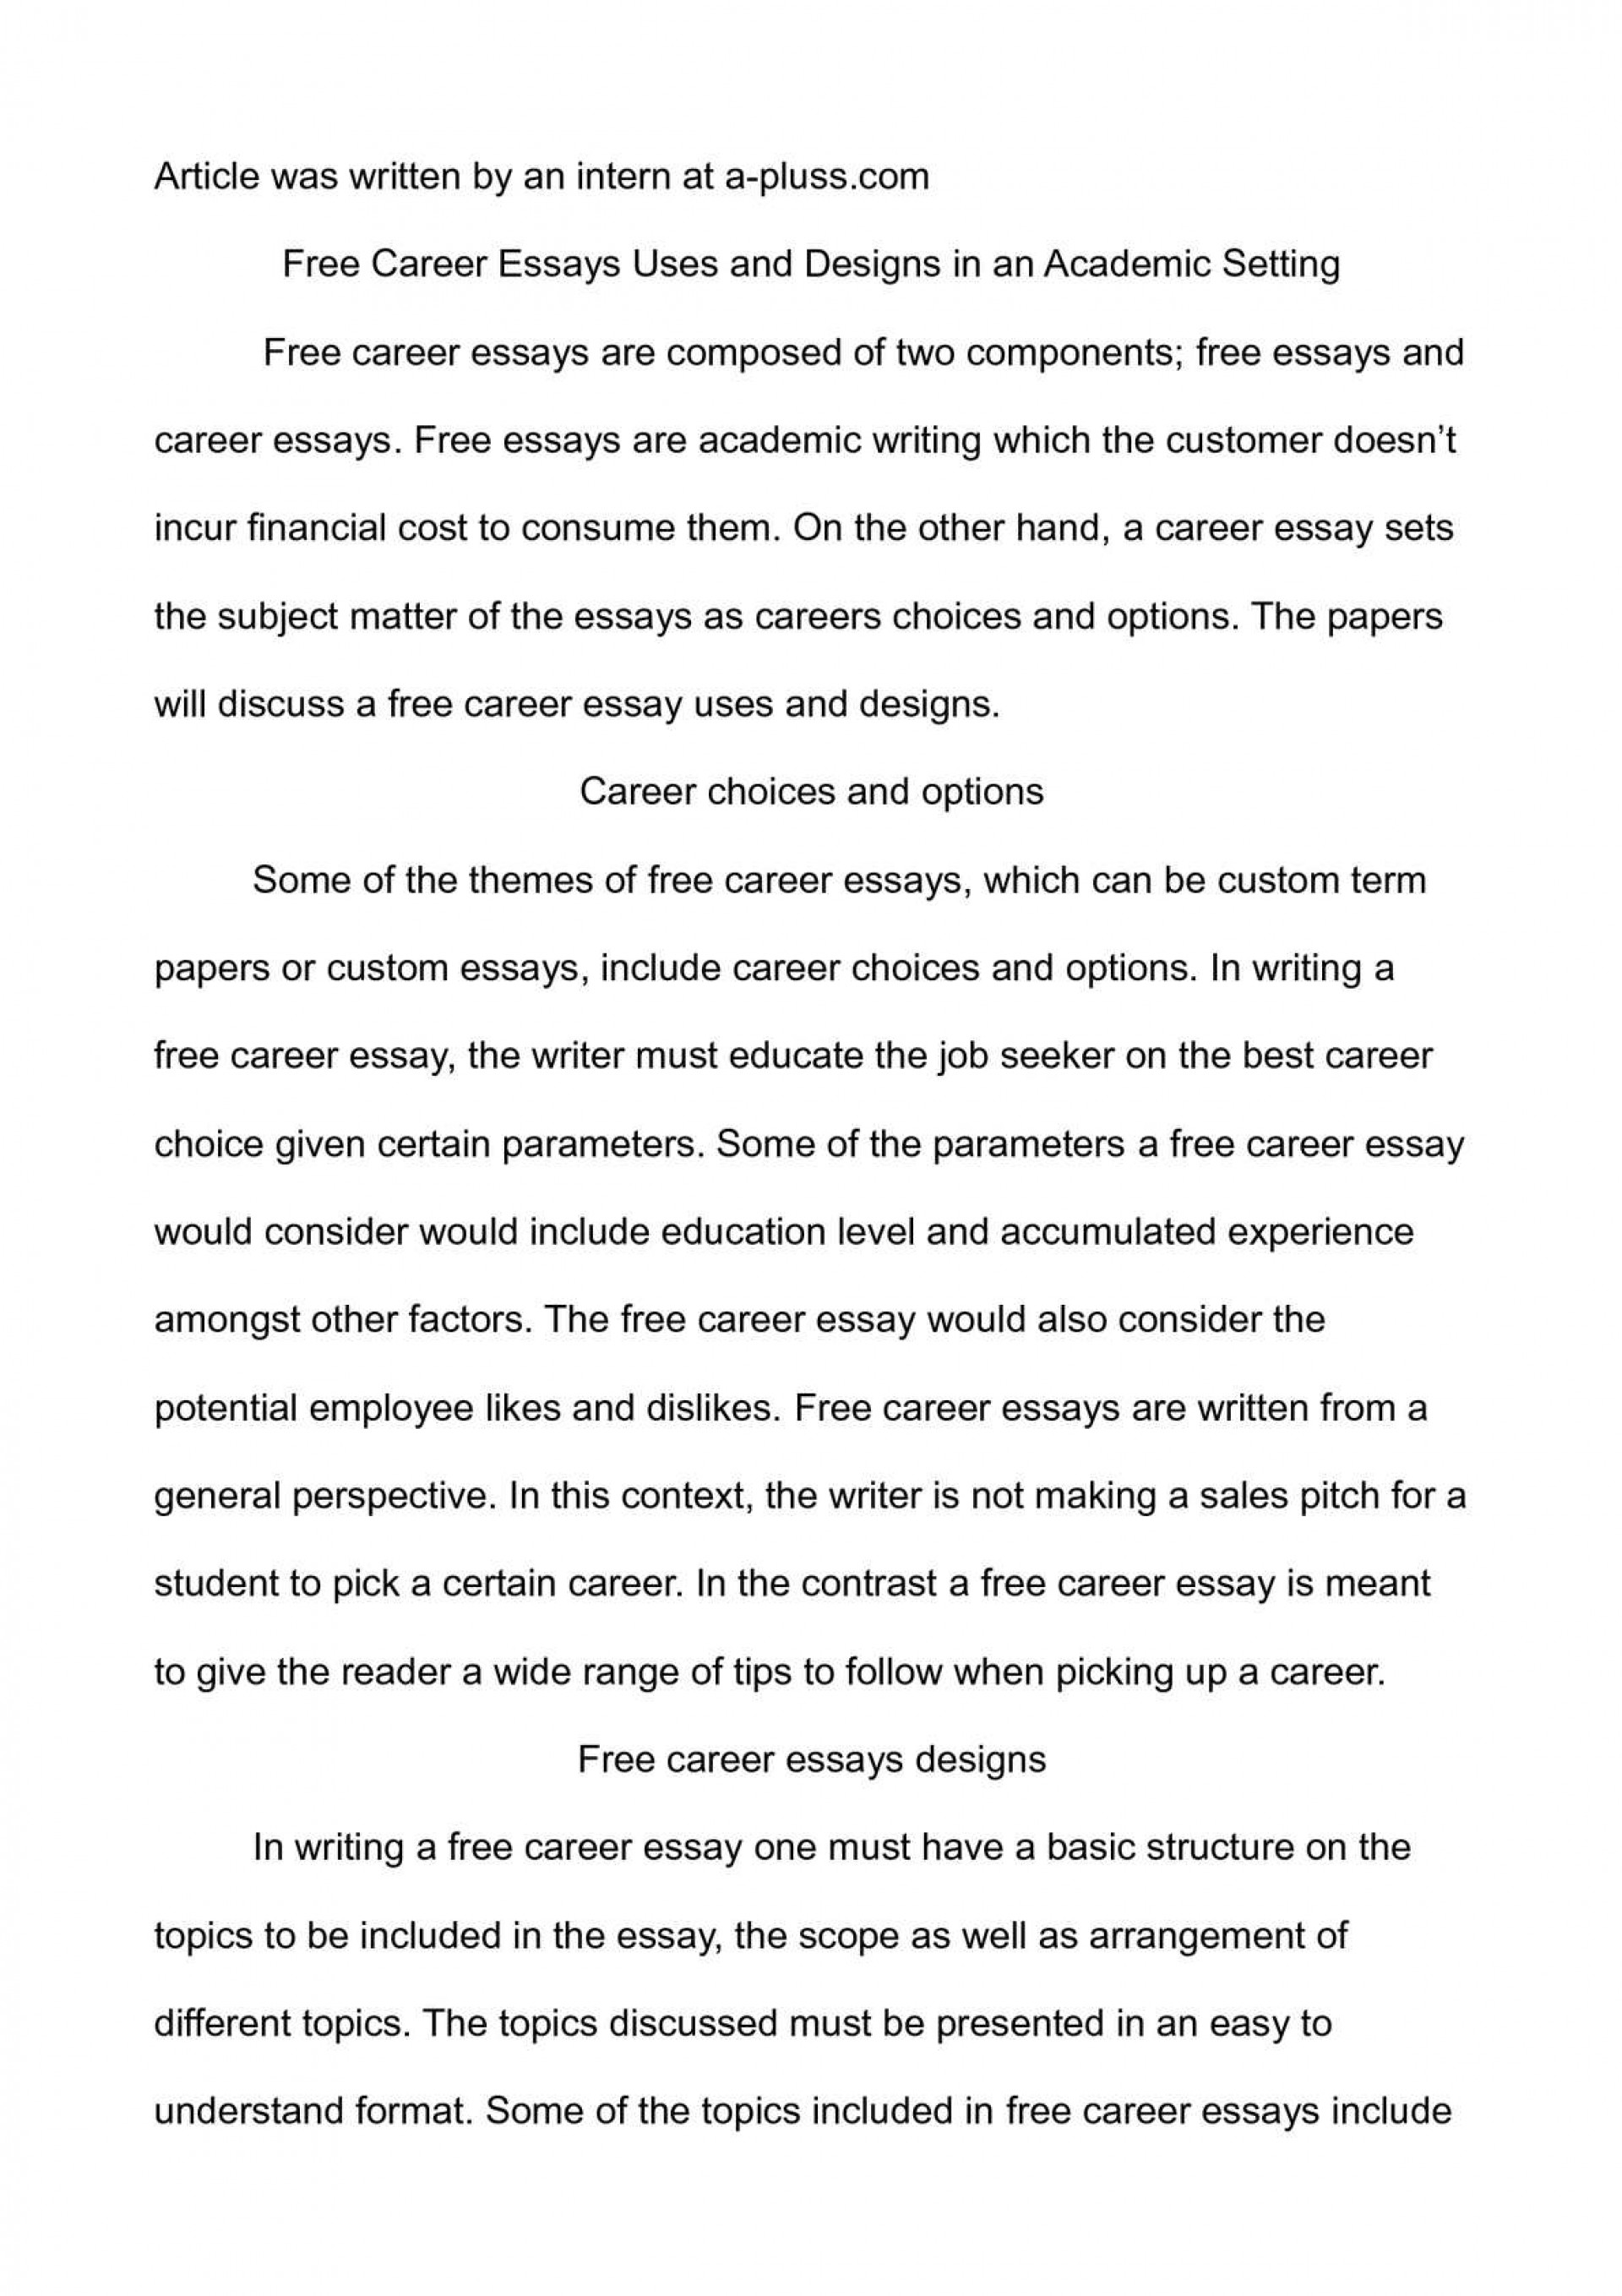 003 P1 Essay Example On Breathtaking Career Goals And Aspirations Sample Choosing A Path 1920